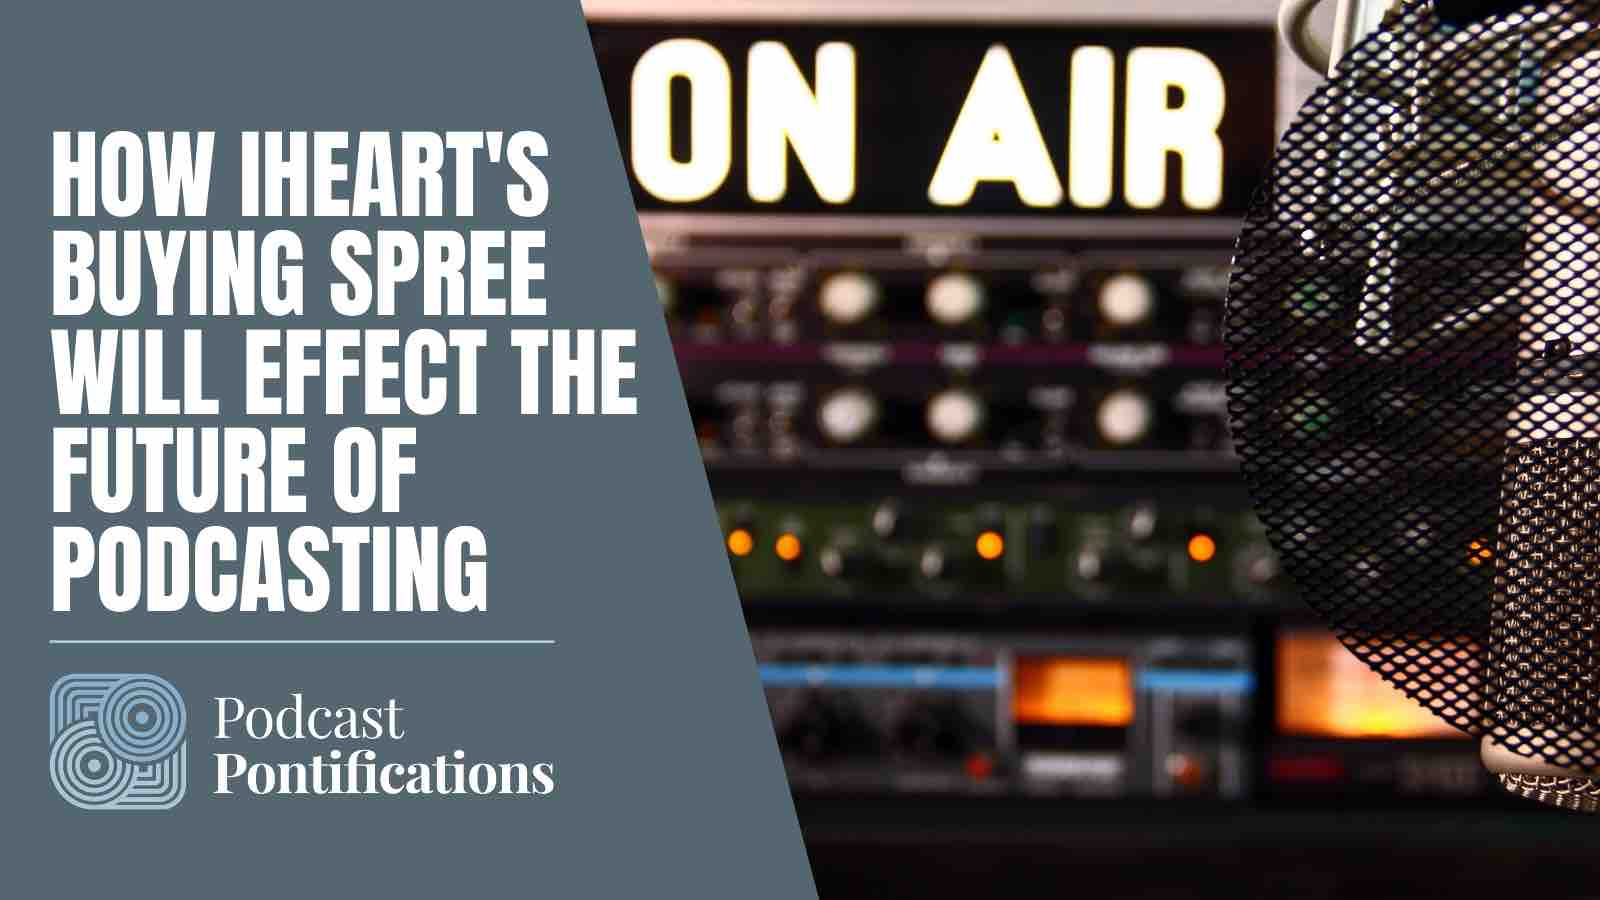 How iHeart's Buying Spree Will Effect The Future Of Podcasting